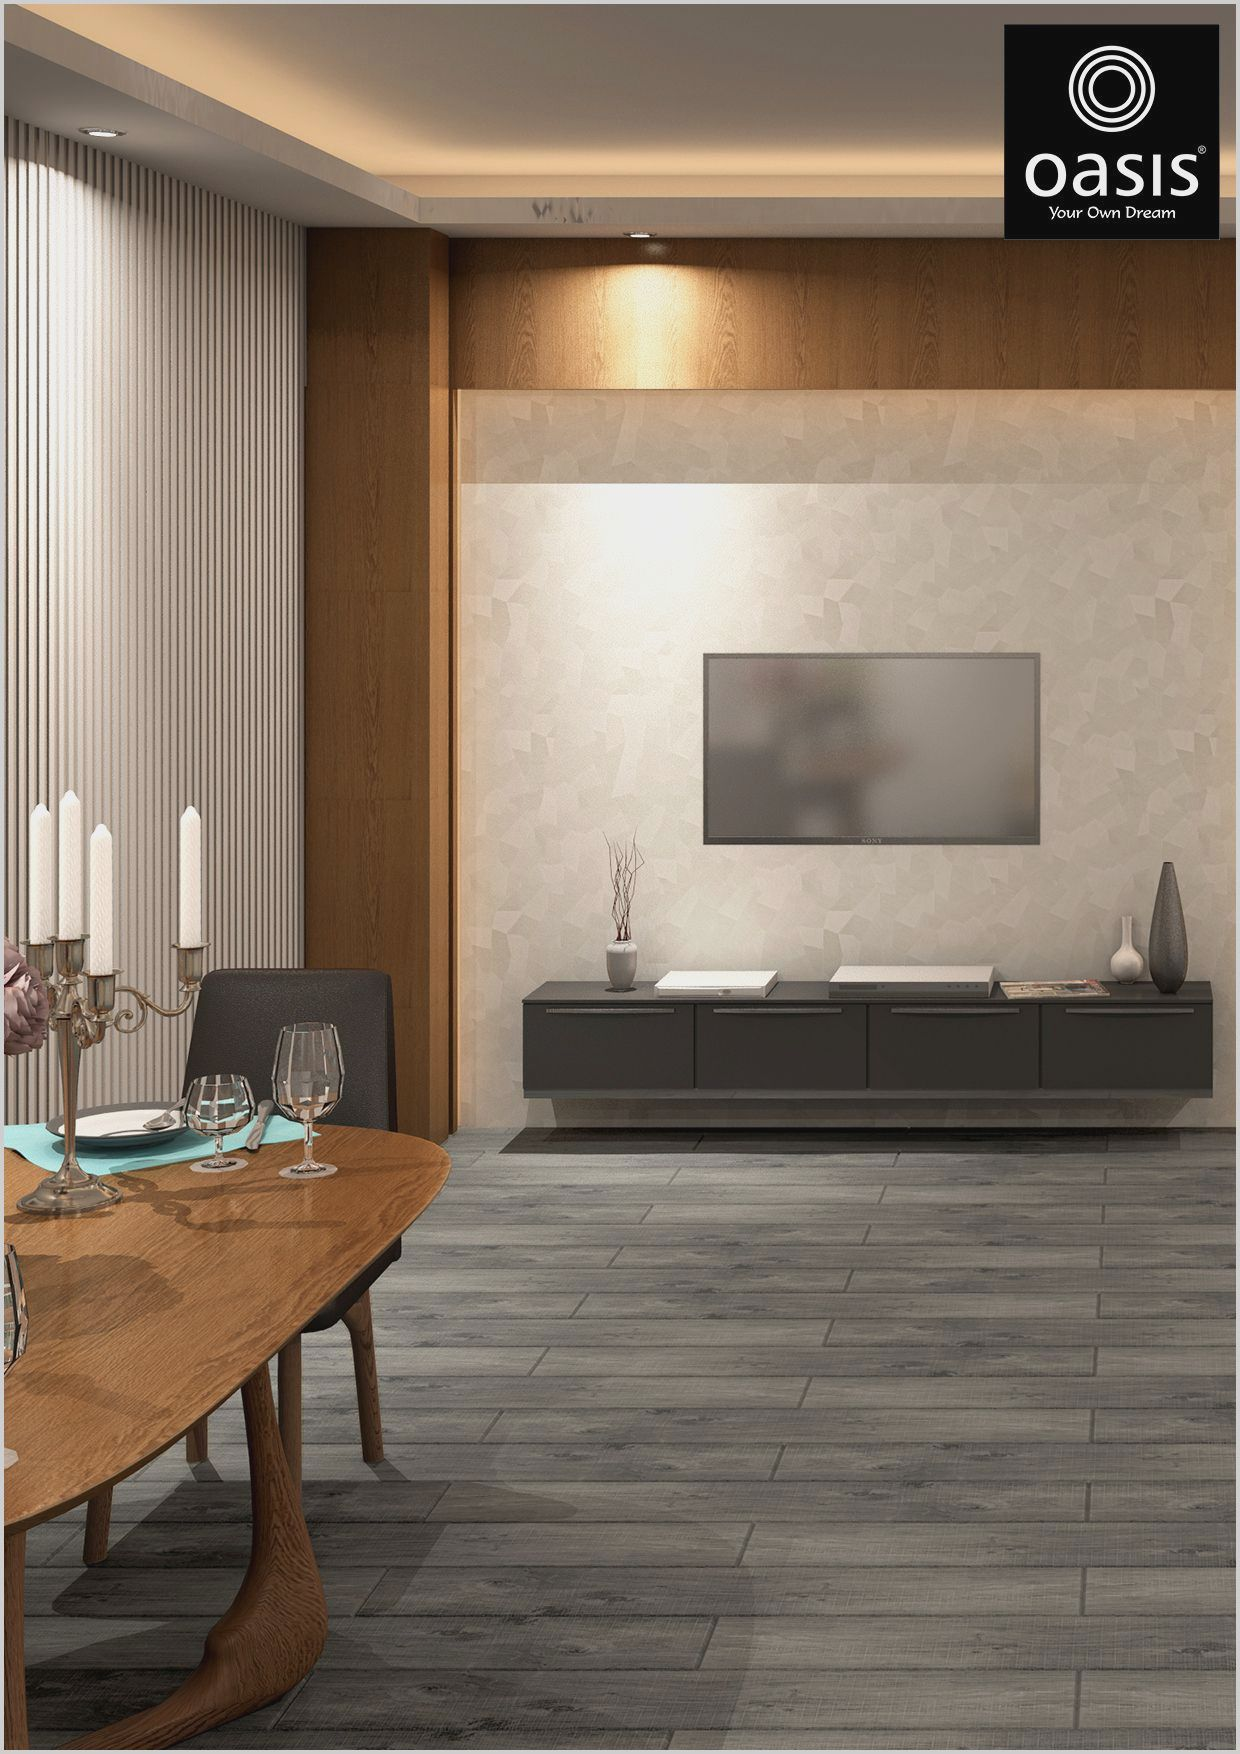 Wall Tiles Images For Living Room In 2020 Living Room Tiles Living Room Designs India Rugs In Living Room #wall #tiles #for #living #room #designs